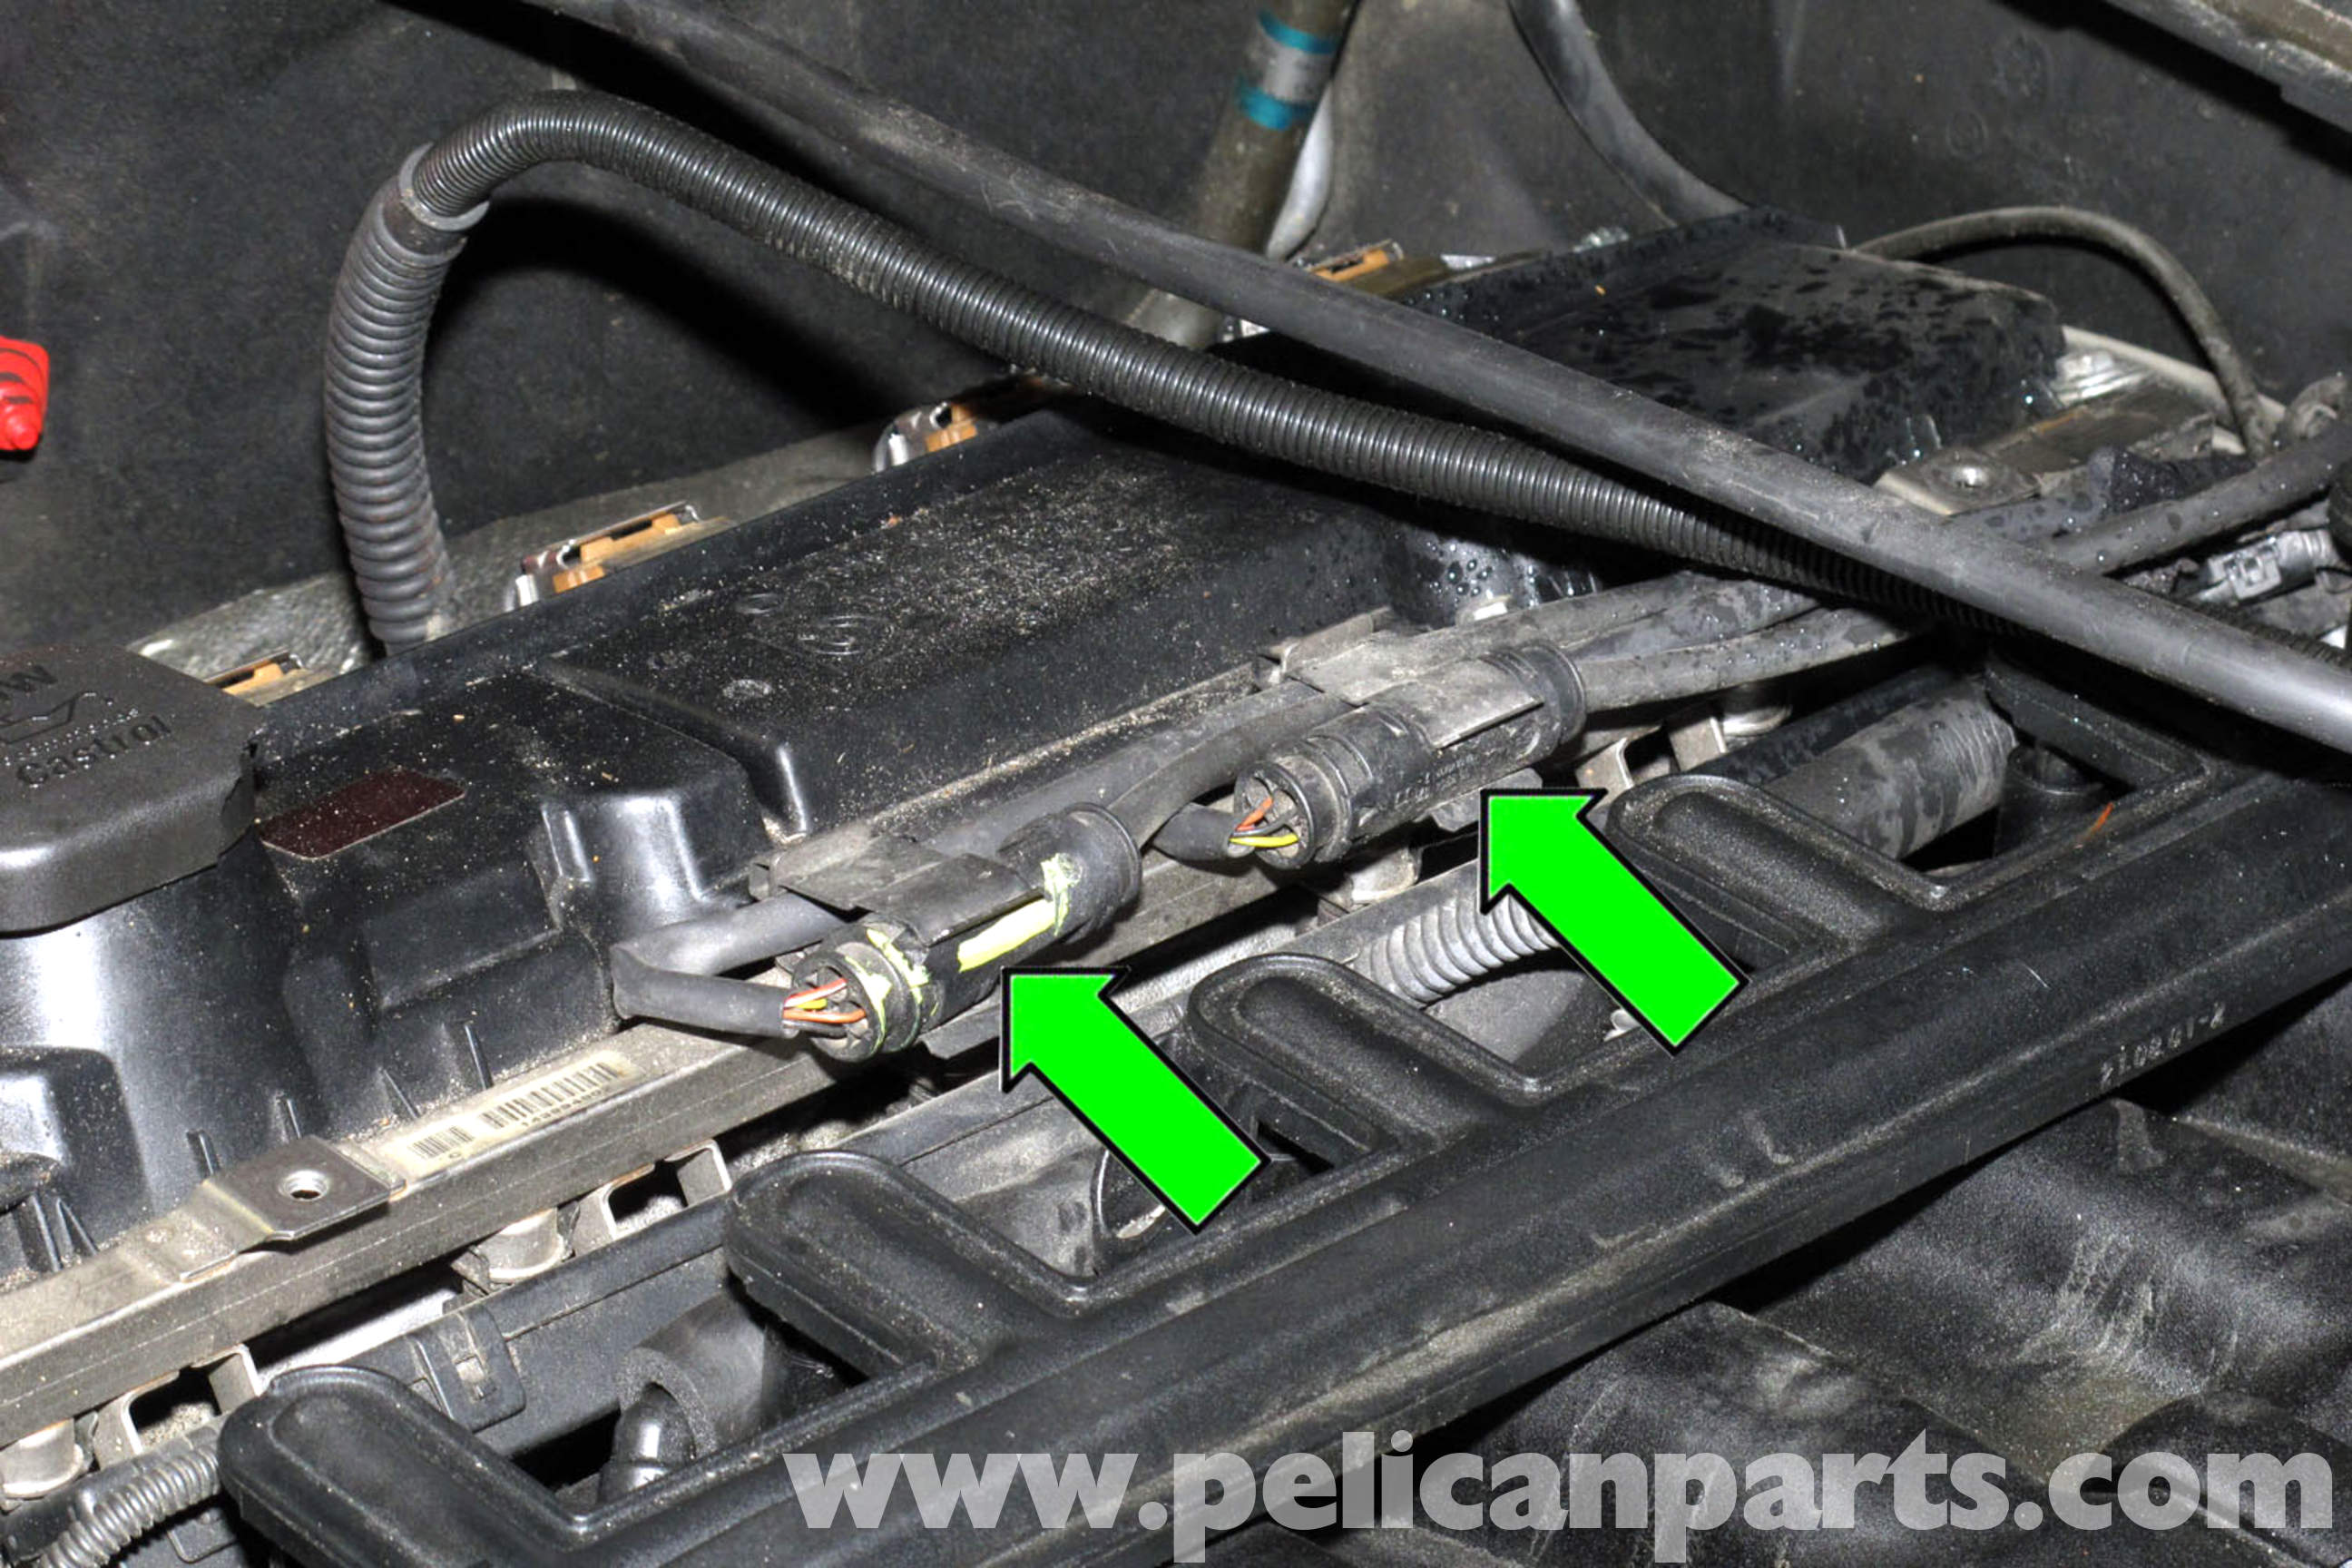 bmw e46 wiring harness diagram on bmw images free download wiring E46 Stereo Wiring Harness bmw e46 wiring harness diagram 13 bmw e46 wiring diagram pdf e38 radio wiring e46 stereo wiring harness